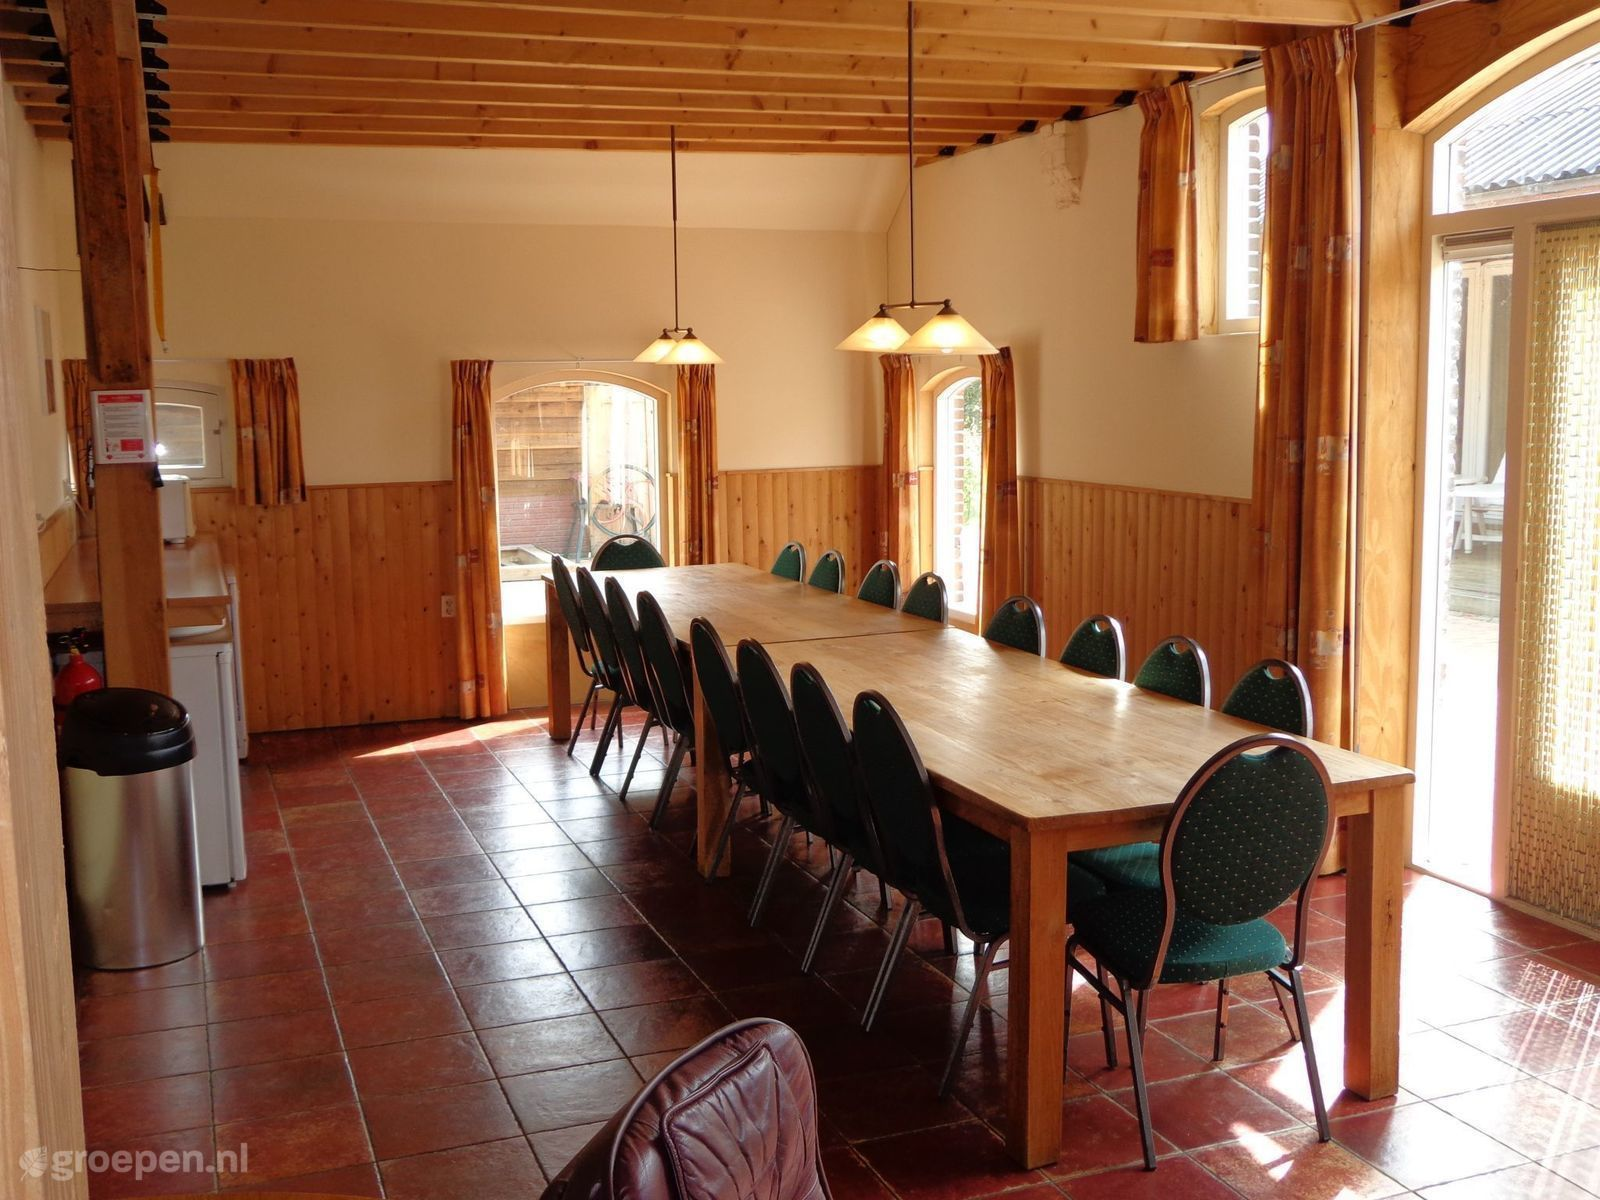 Group accommodation Stoutenburg